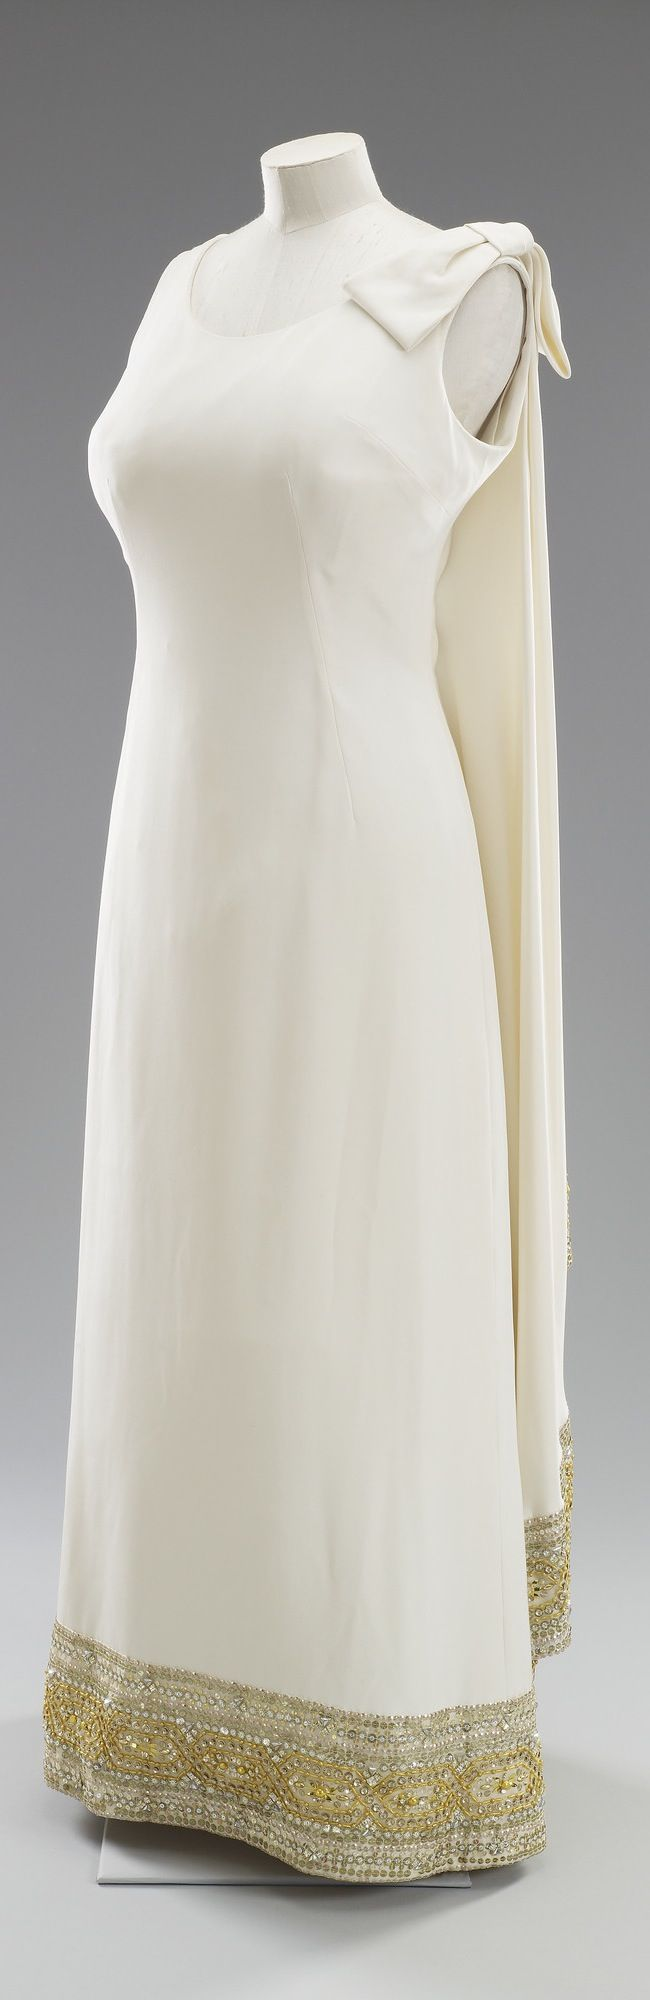 Evening gown, by Sir Norman Hartnell, 1967. Silk crêpe with gold and silver sequin and bead embroidery. Worn by H.M. Queen Elizabeth II. Royal Collection Trust/All Rights Reserved.